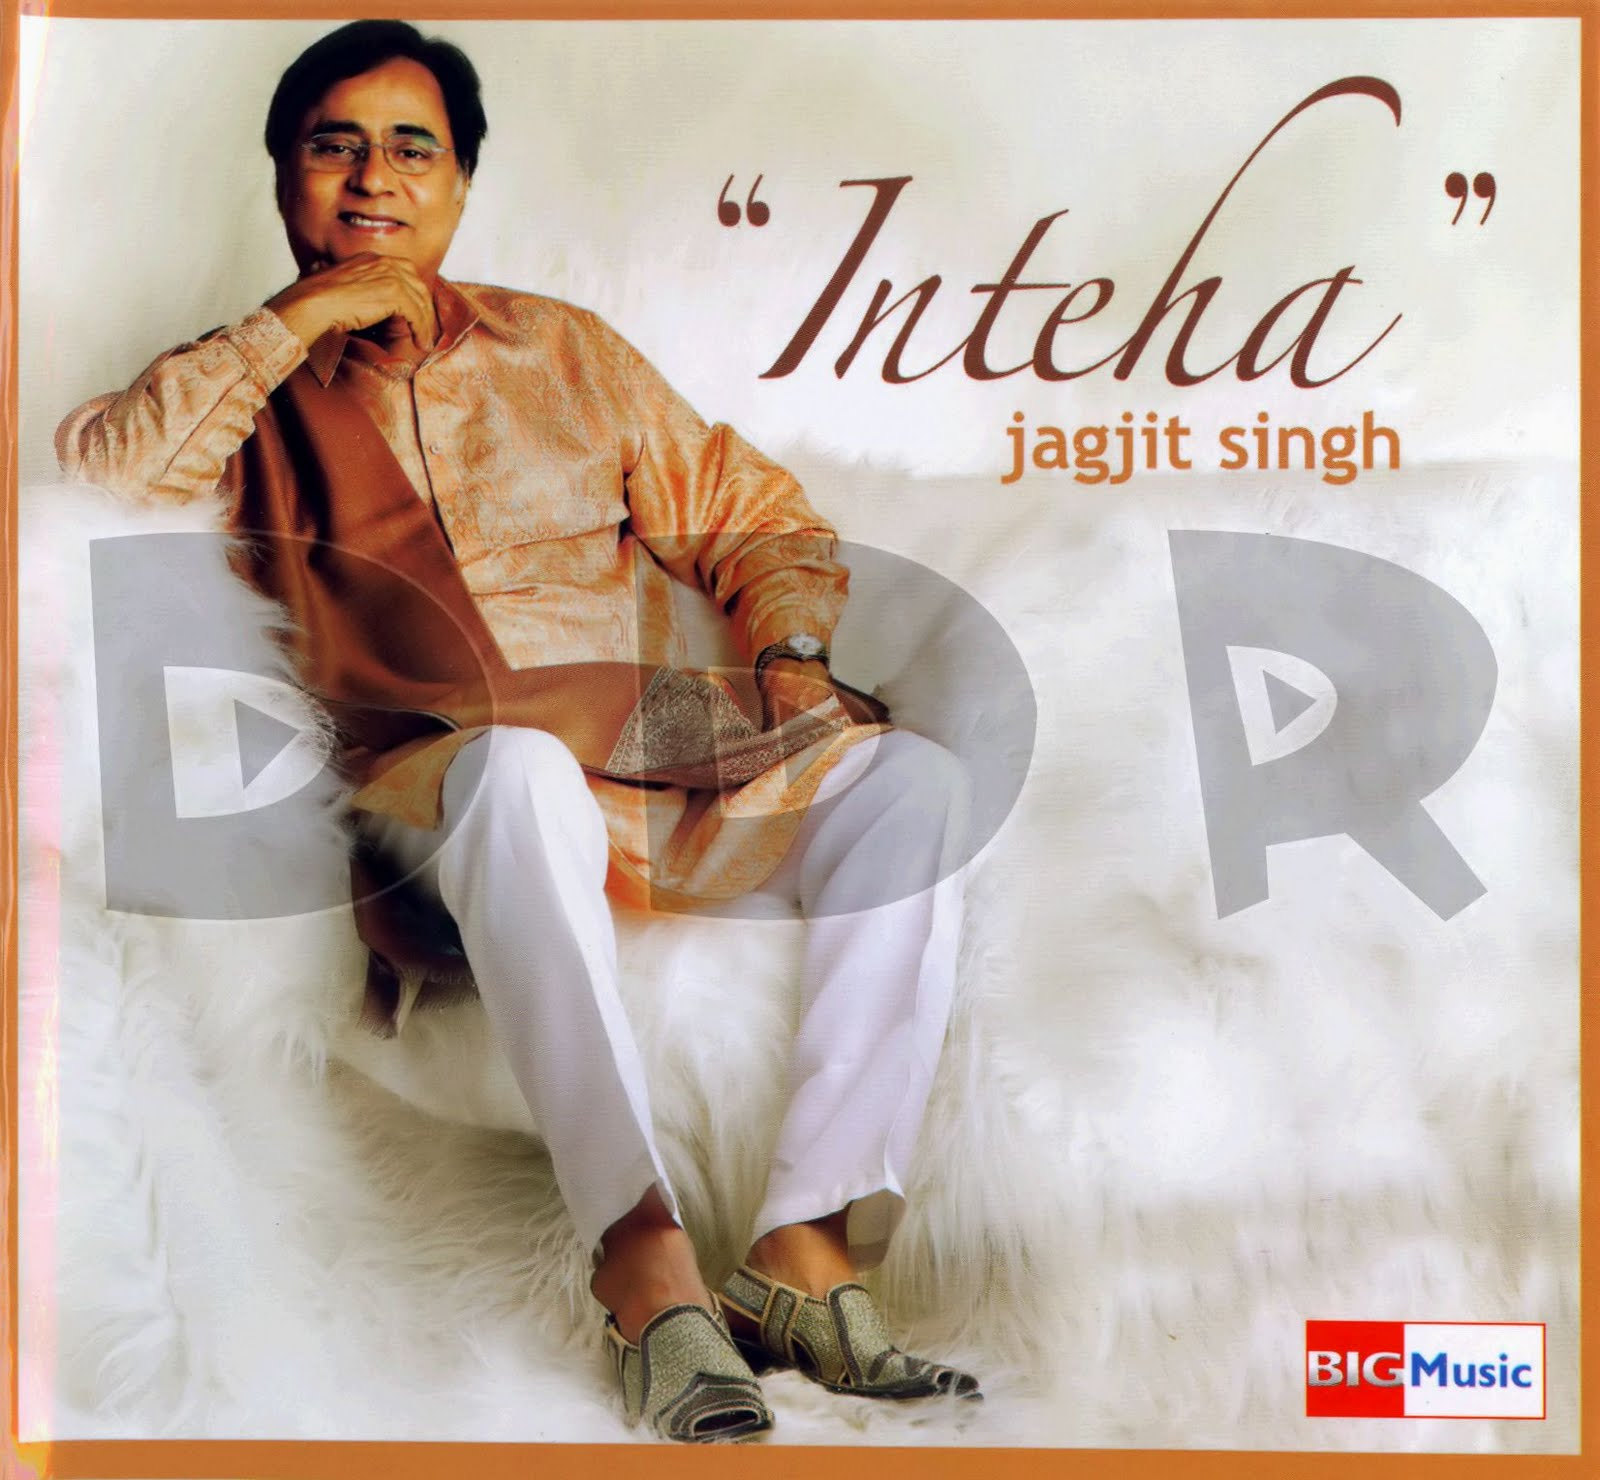 Station Hollywood: Expiry of Jagjit Singh is a great blow ...